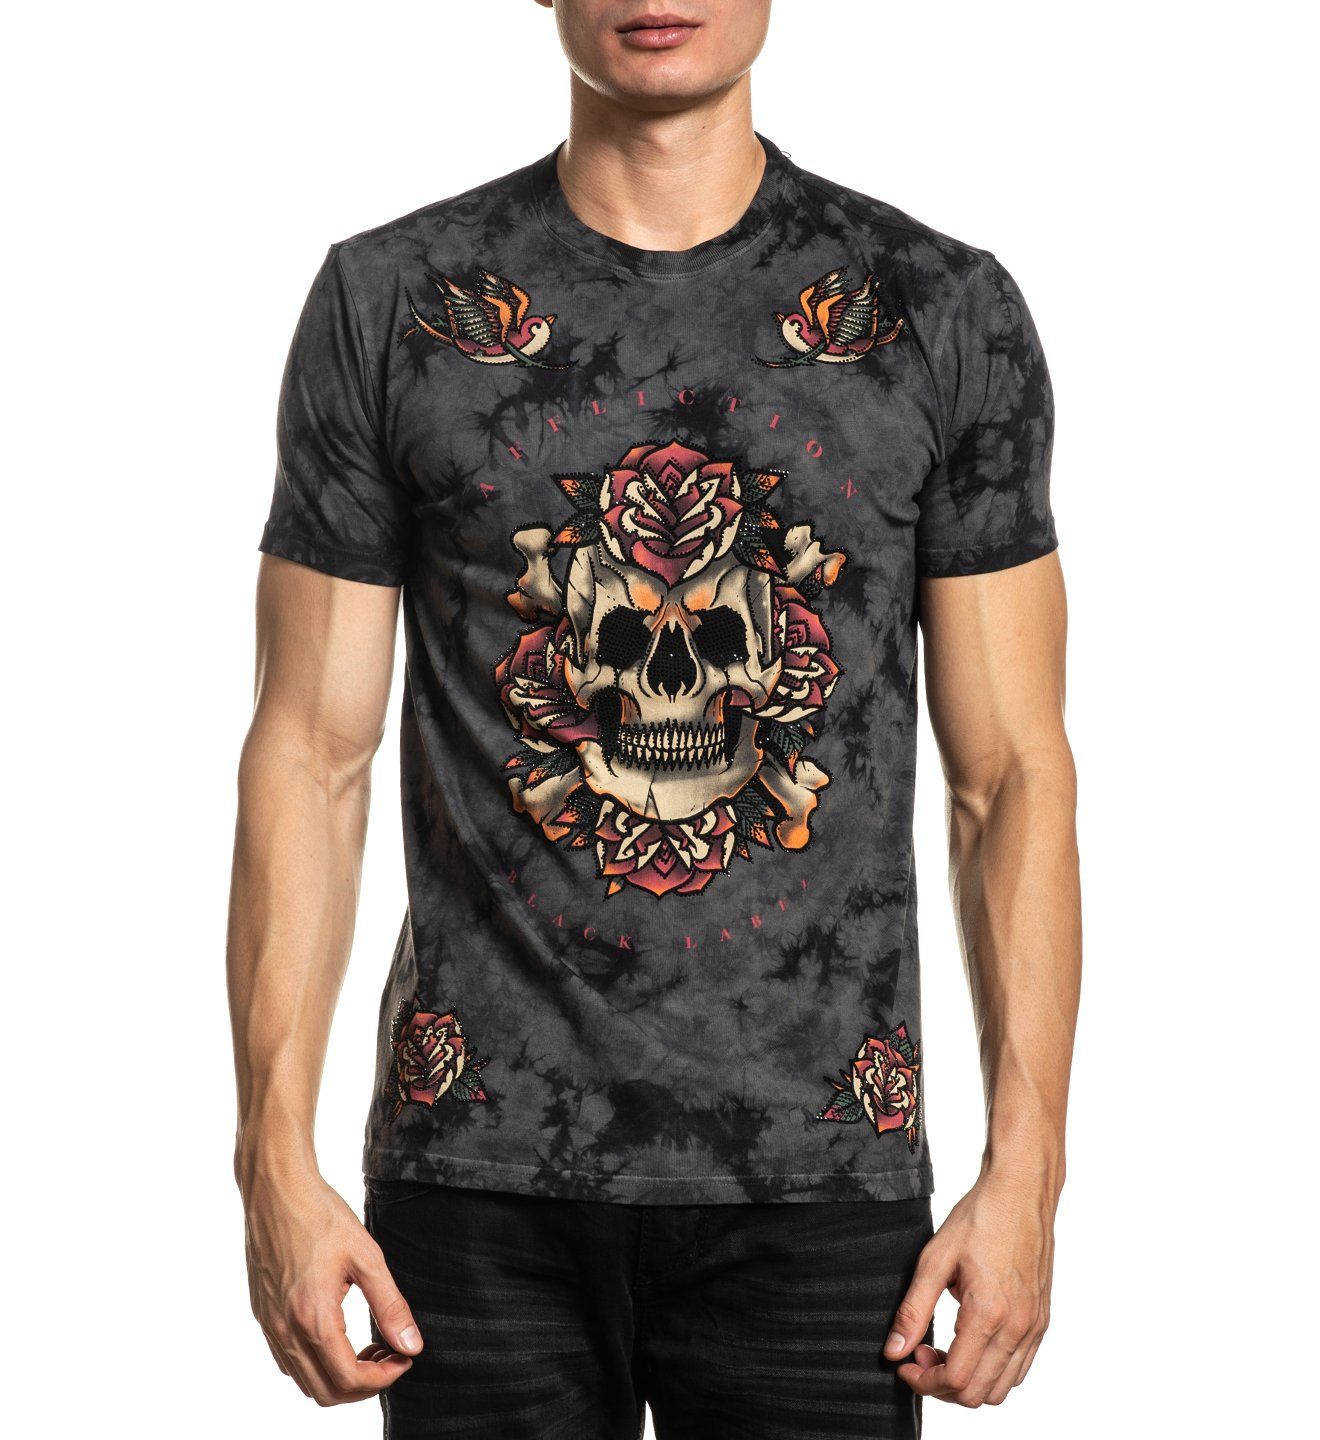 Club Chapter - Mens Short Sleeve Tees - Affliction Clothing